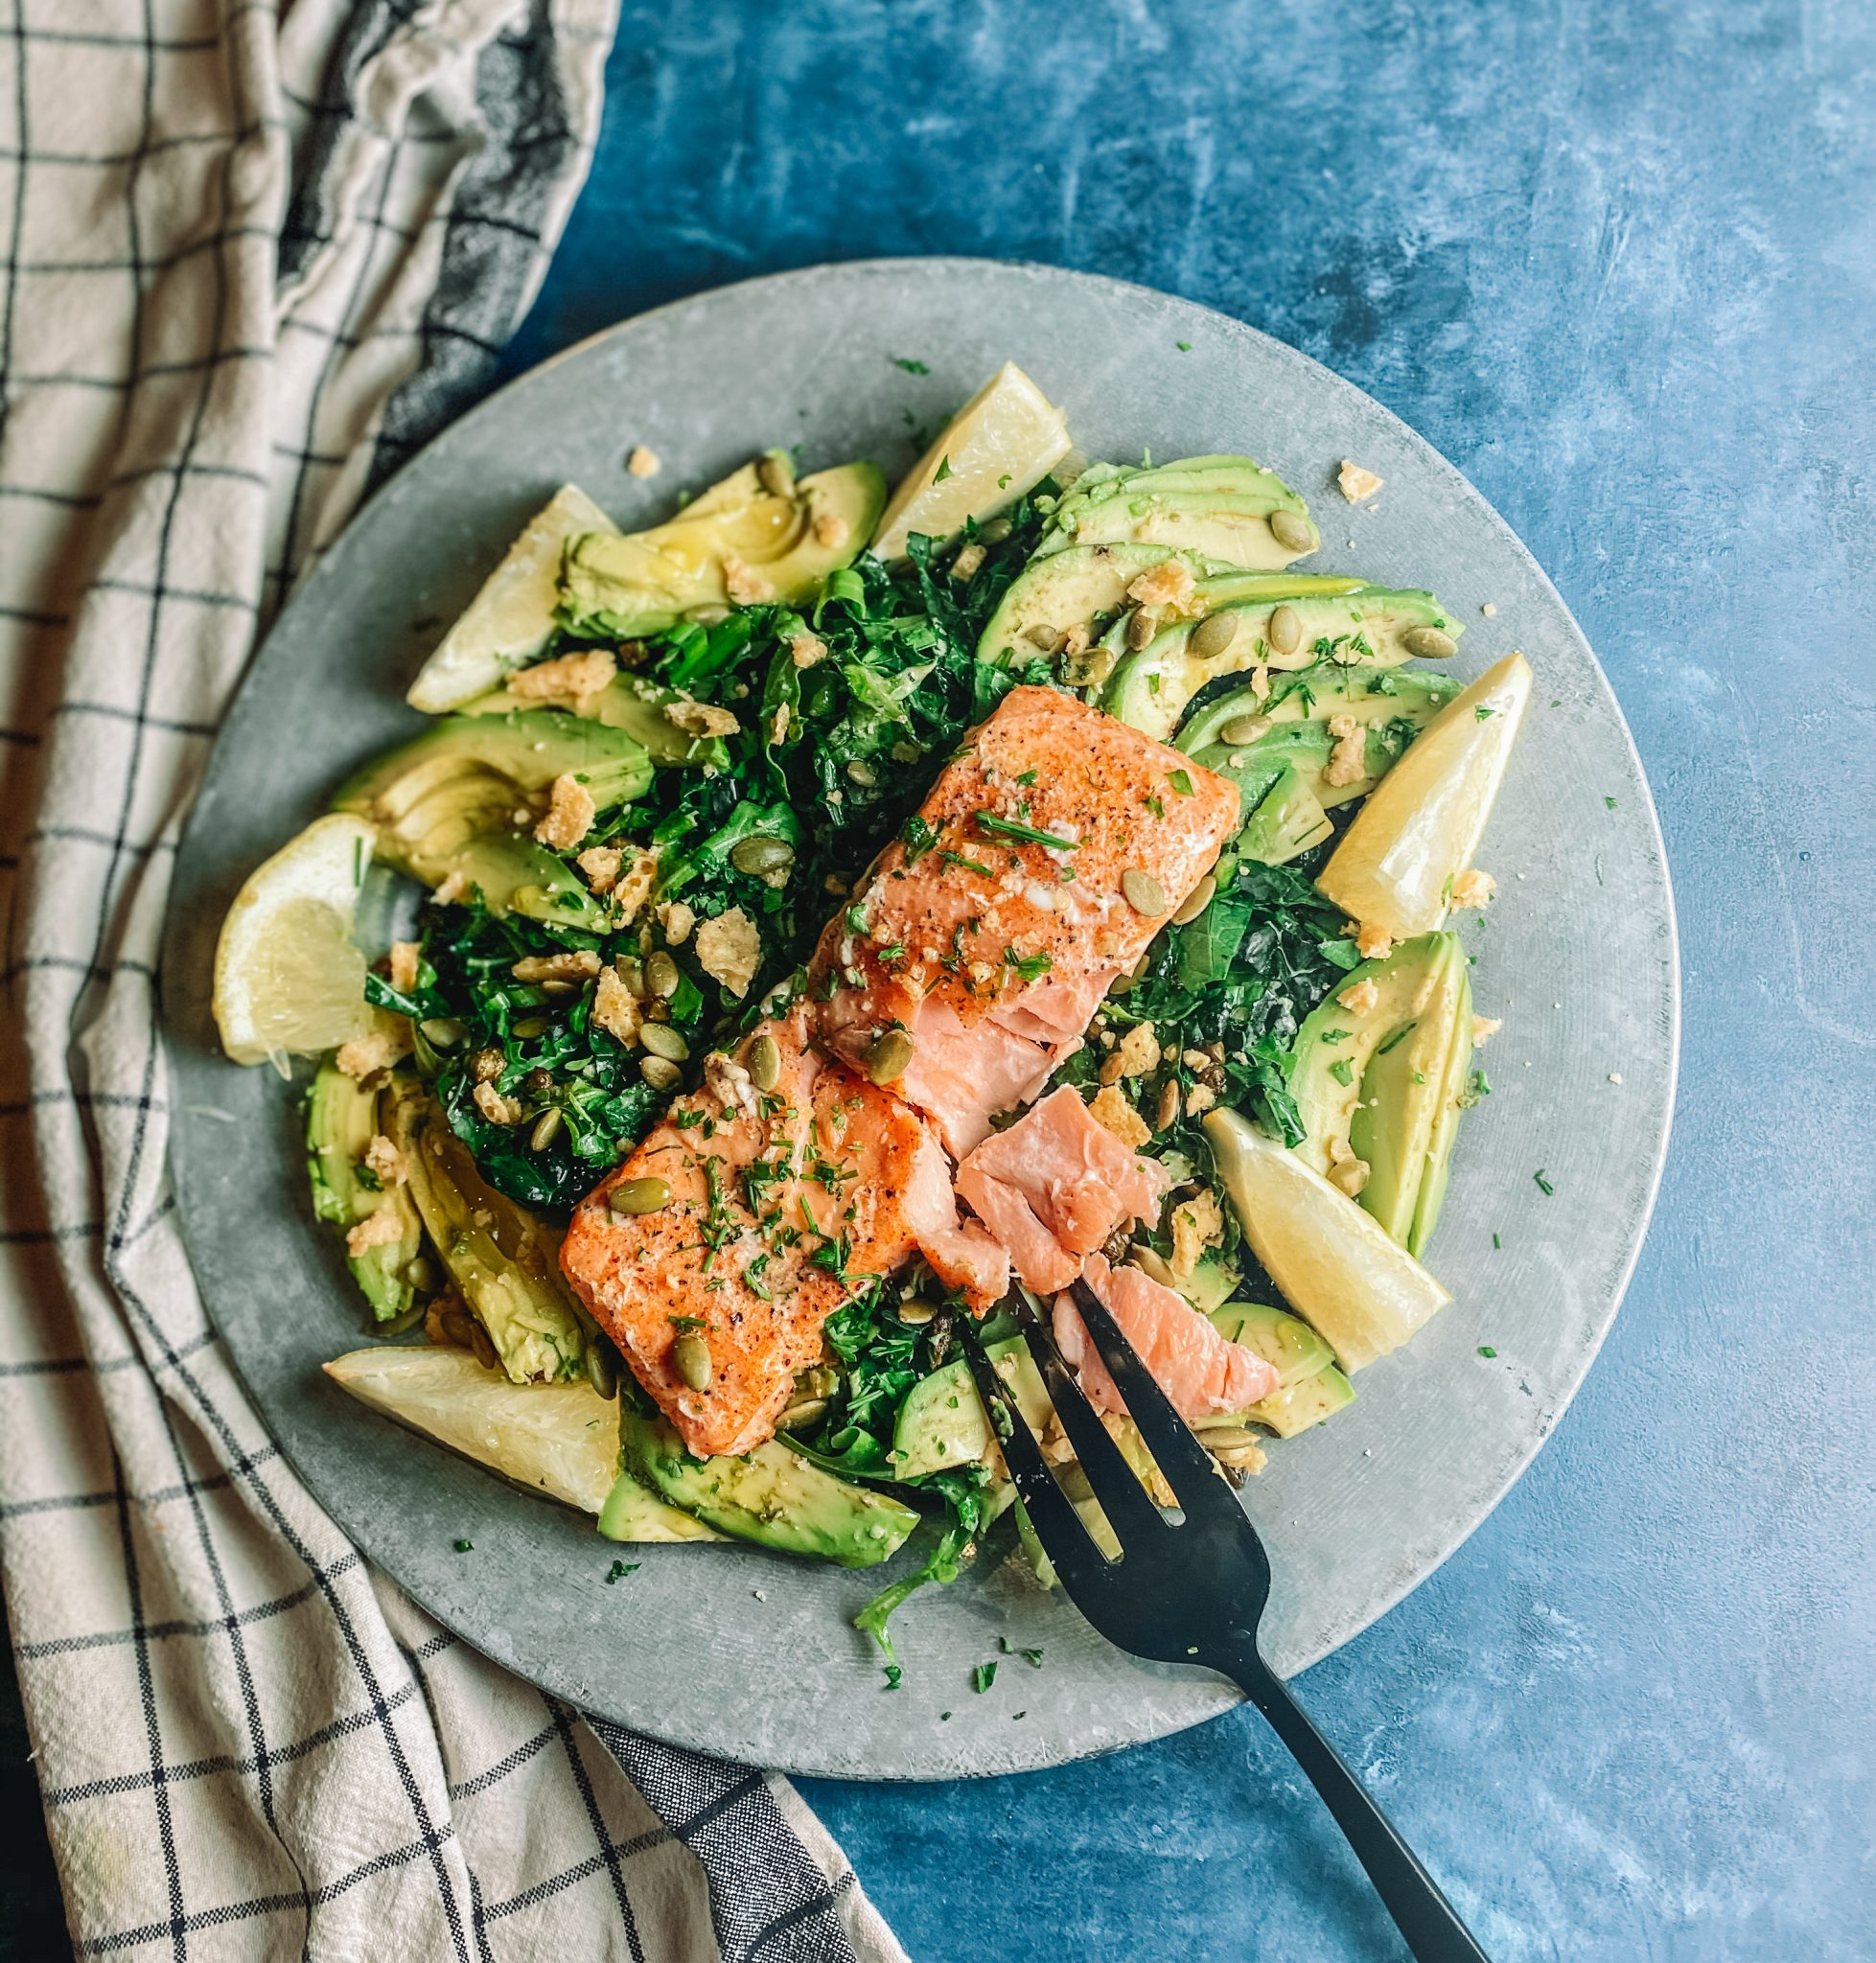 Salmon filet on a bed of greens and avocado, plated with a fork and a blue background.